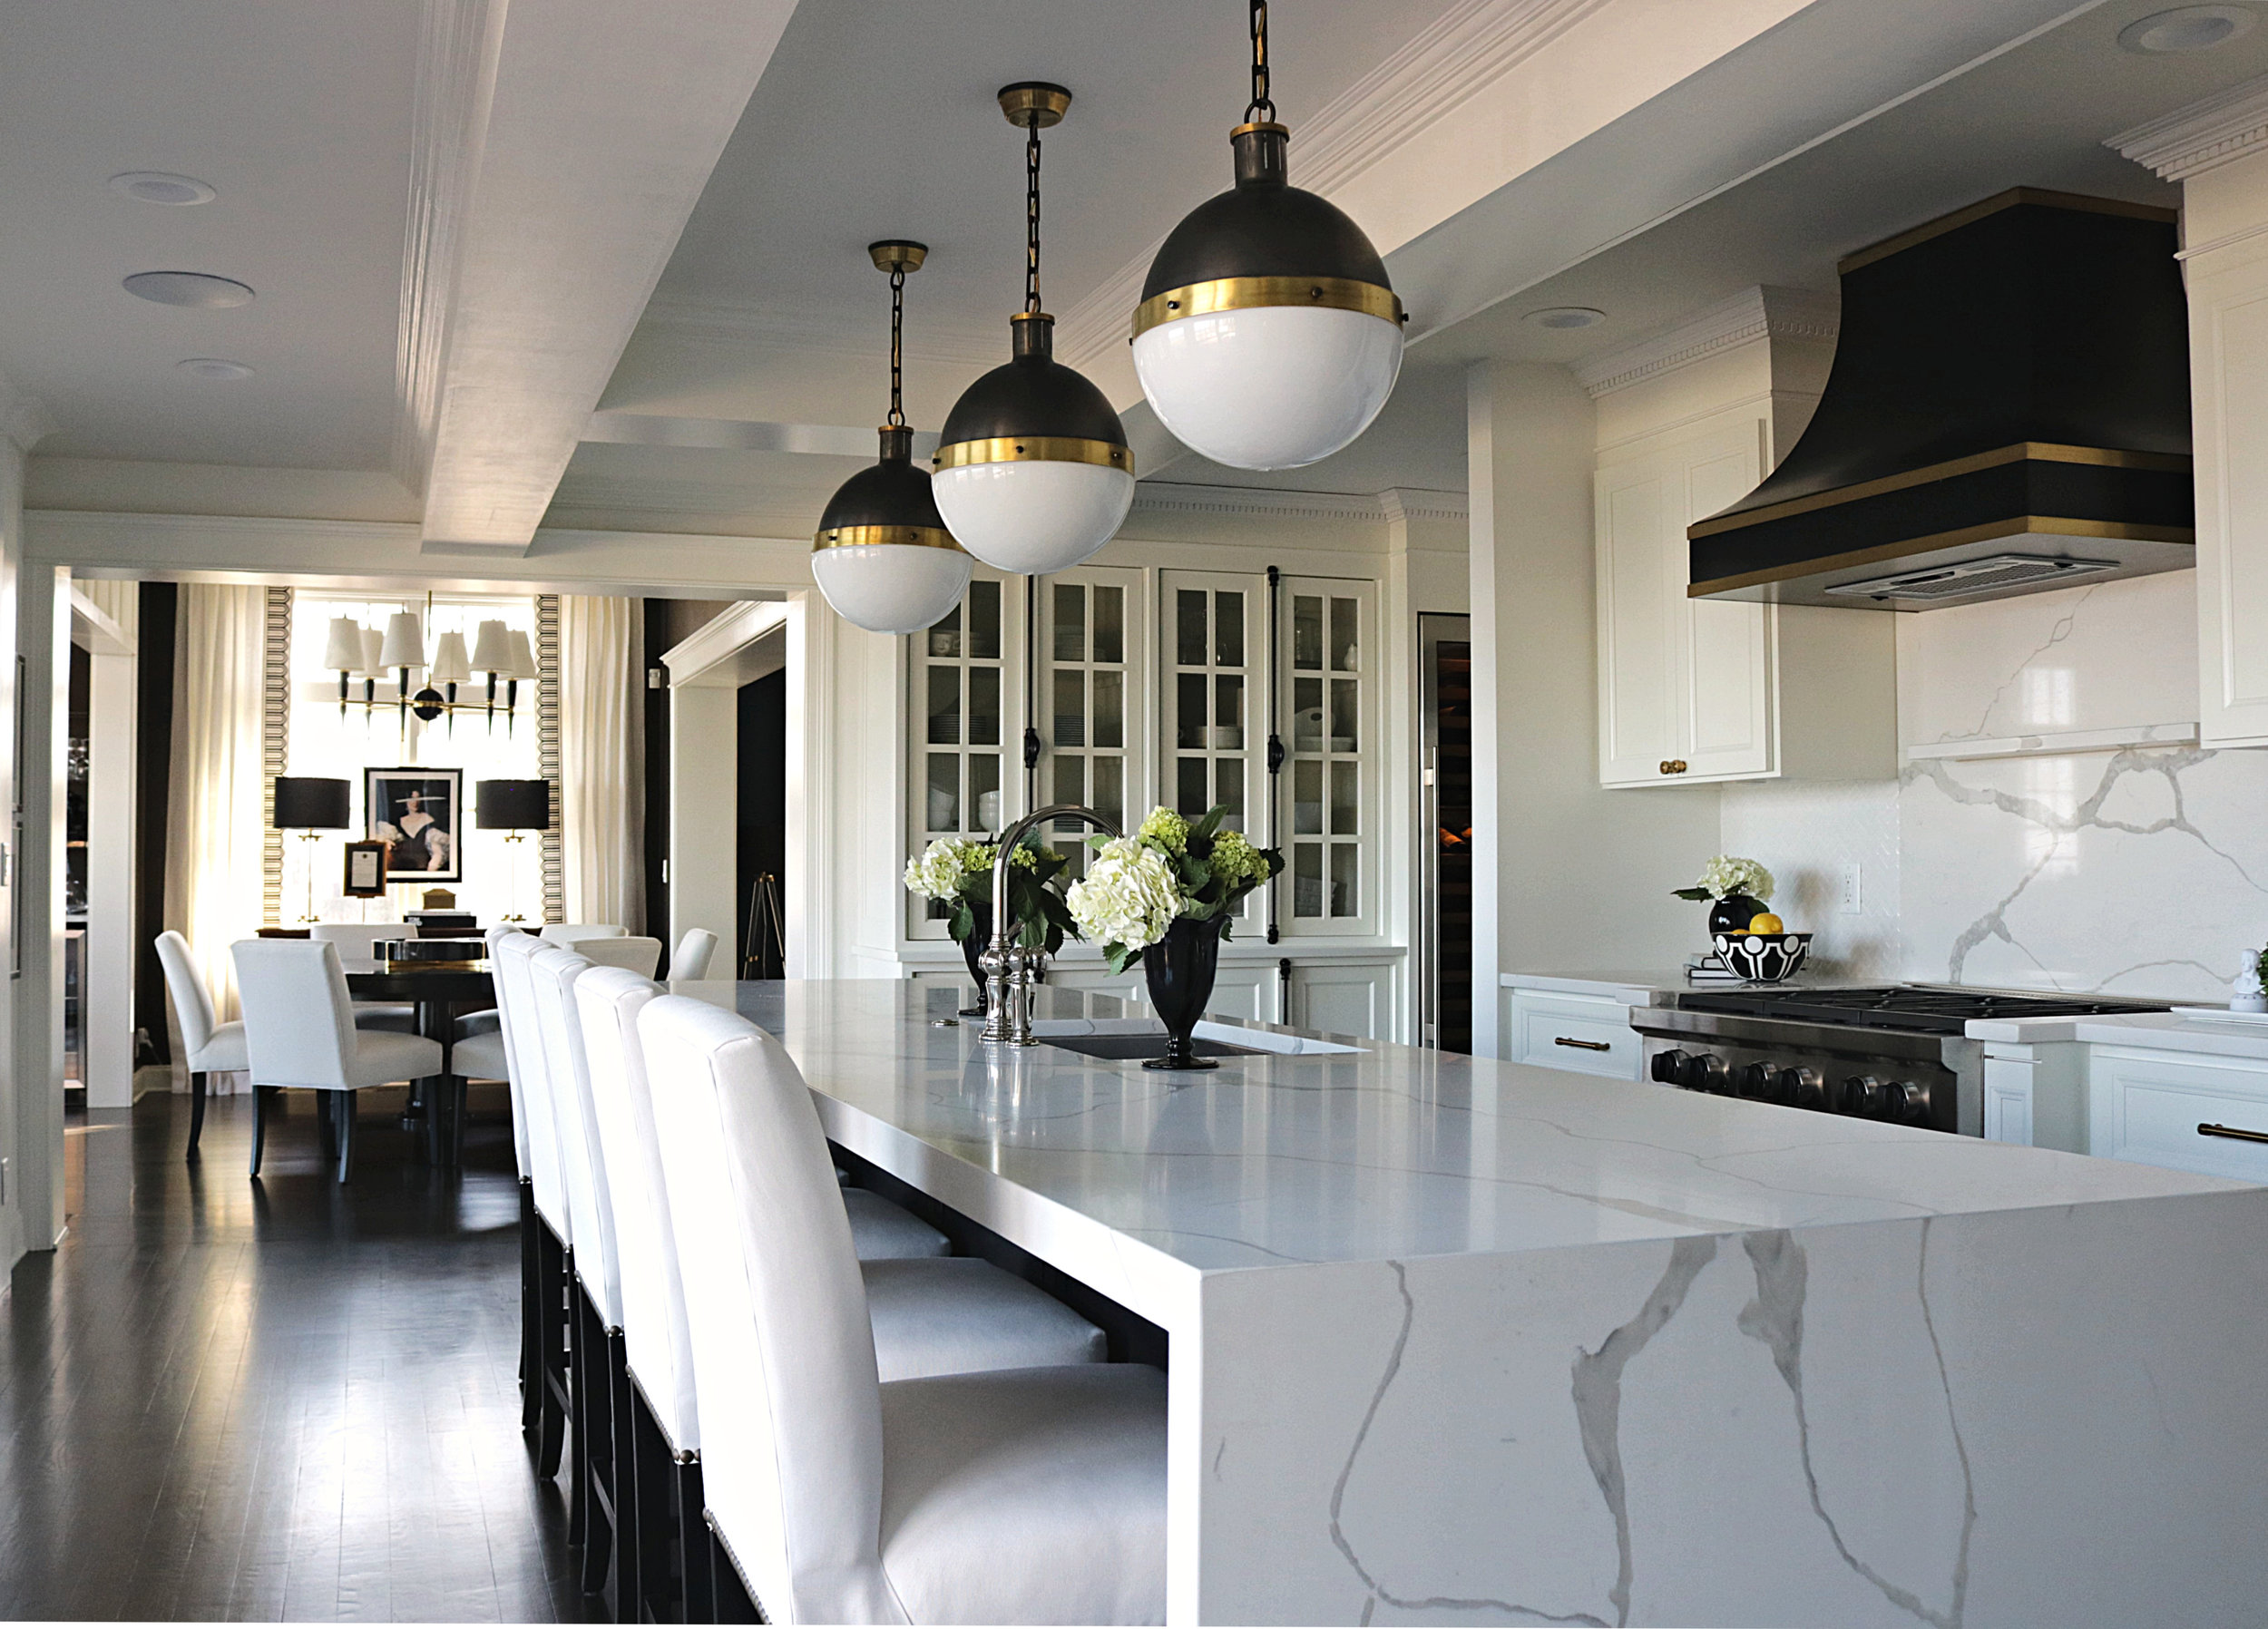 Kelle Dame Interiors Black and Brass Hood Kitchen Design Josh Young.JPG